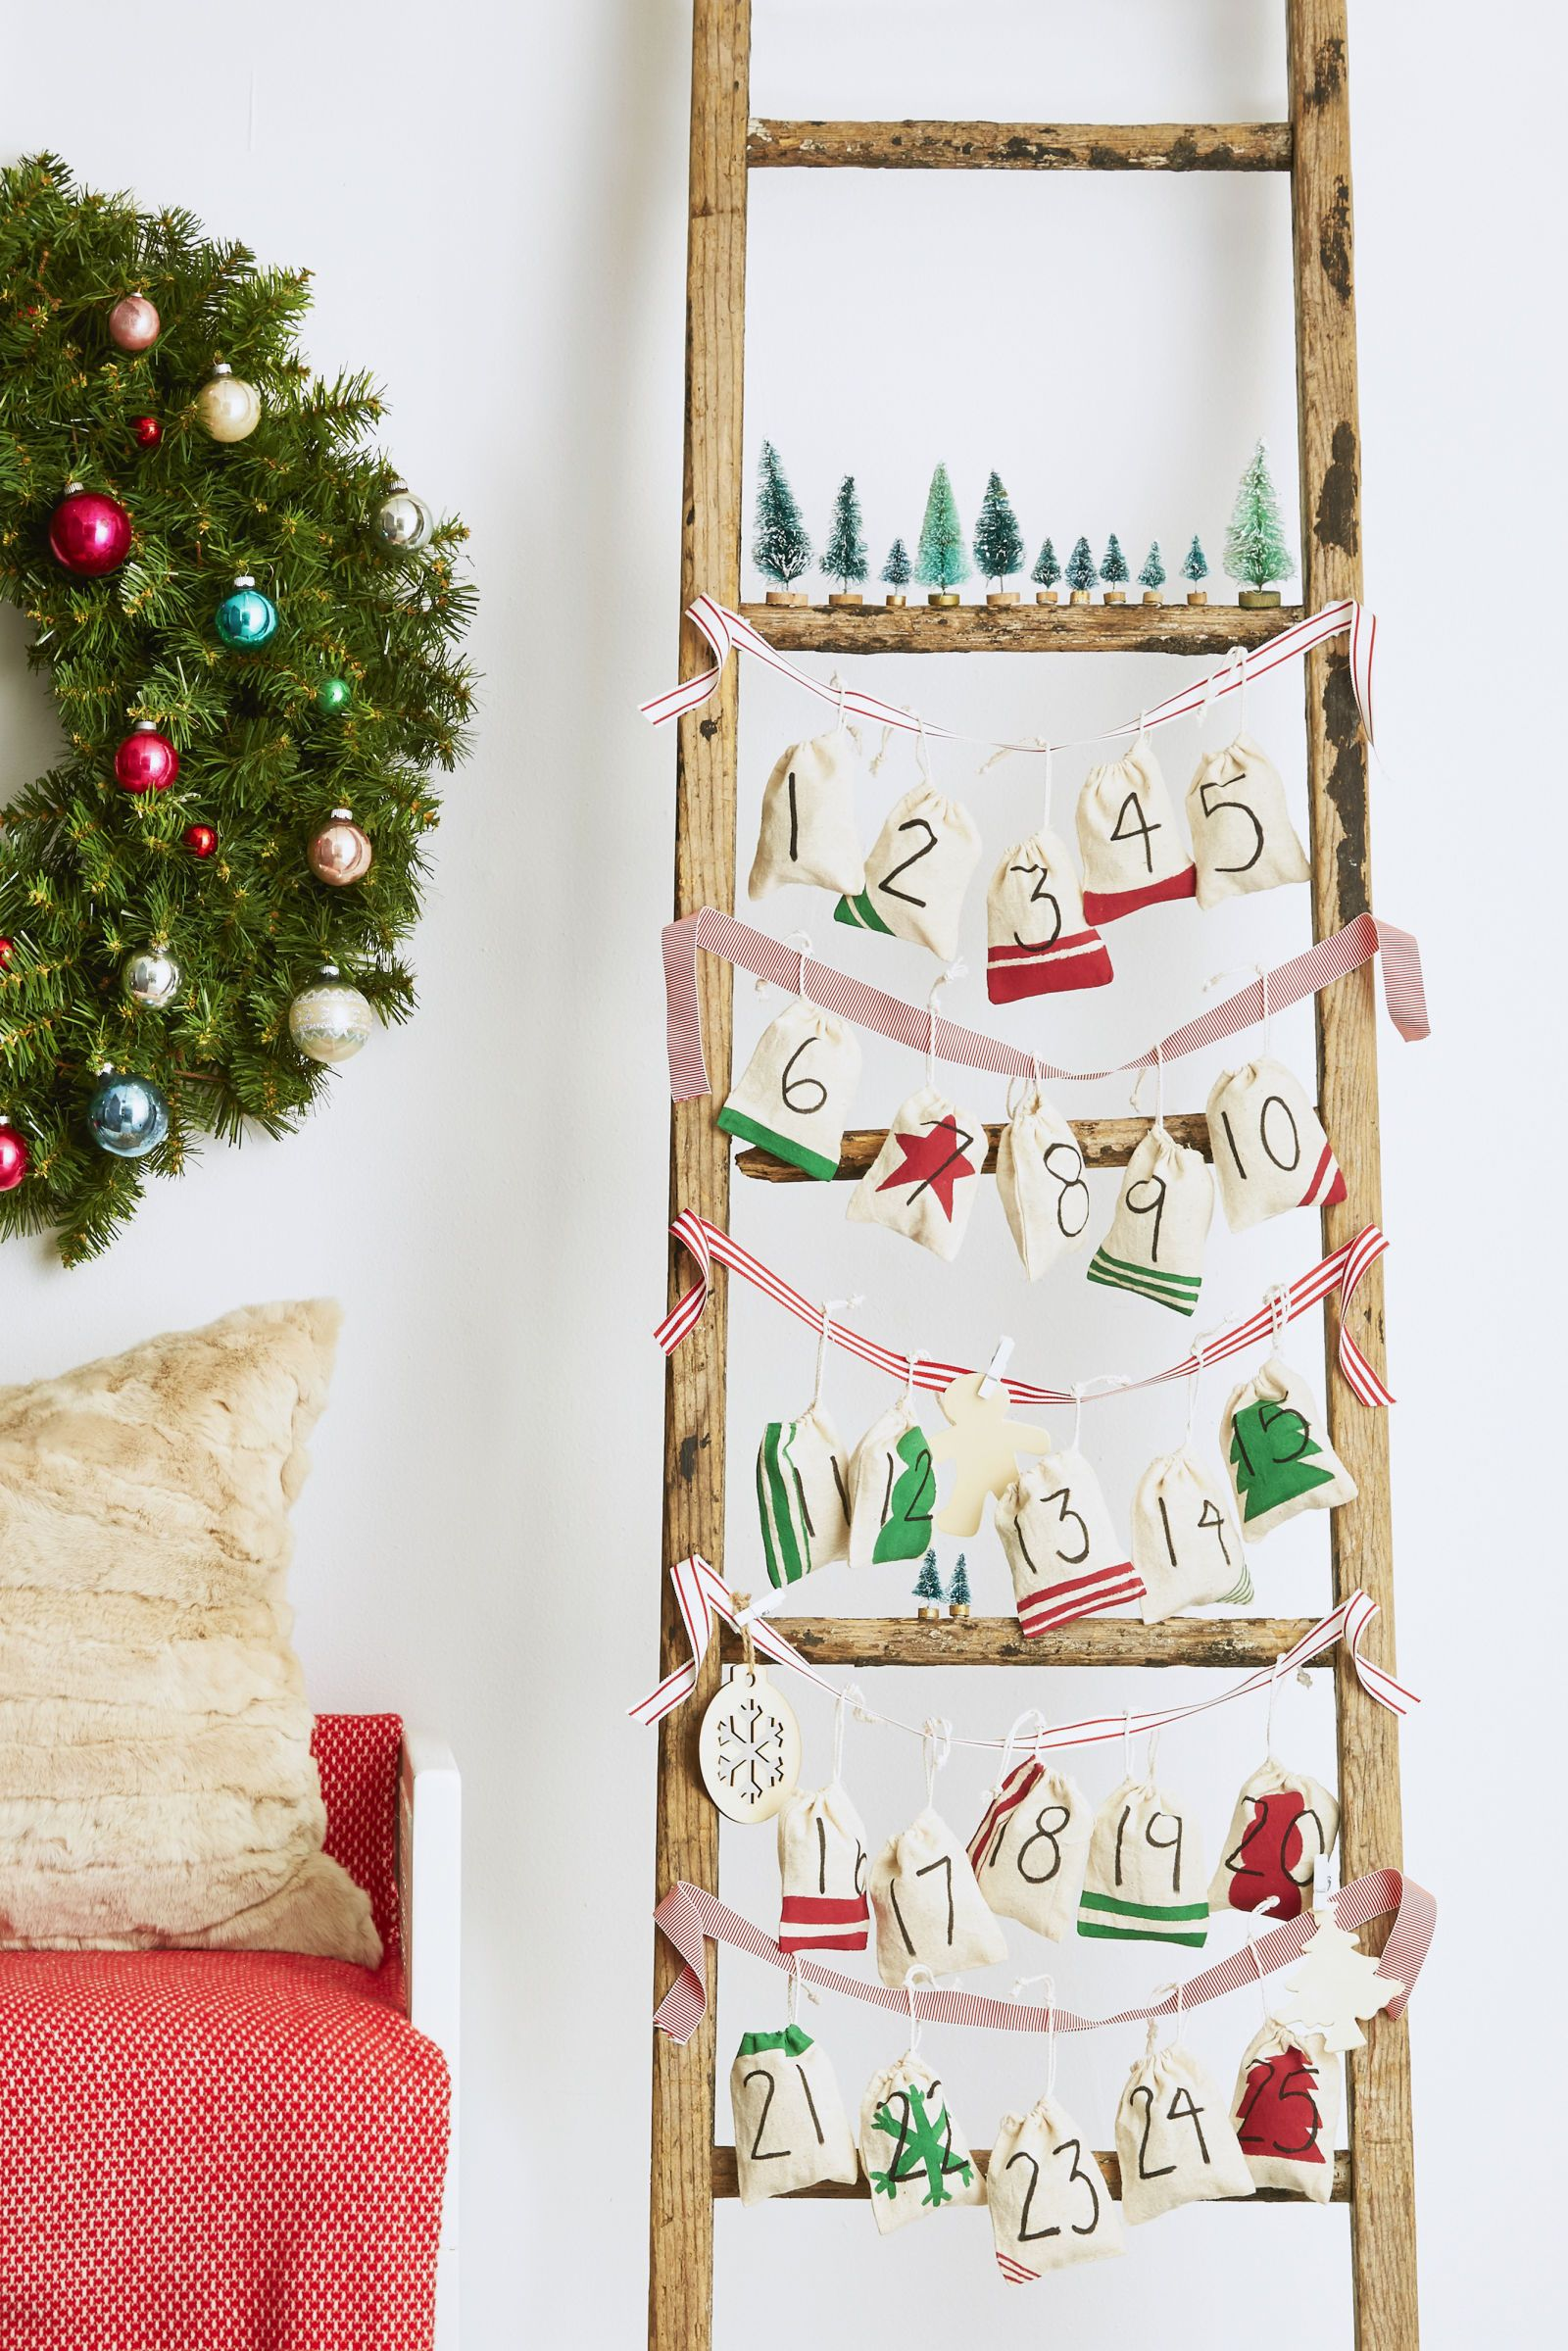 100 Christmas Home Decorating Ideas - Beautiful Christmas Decorations